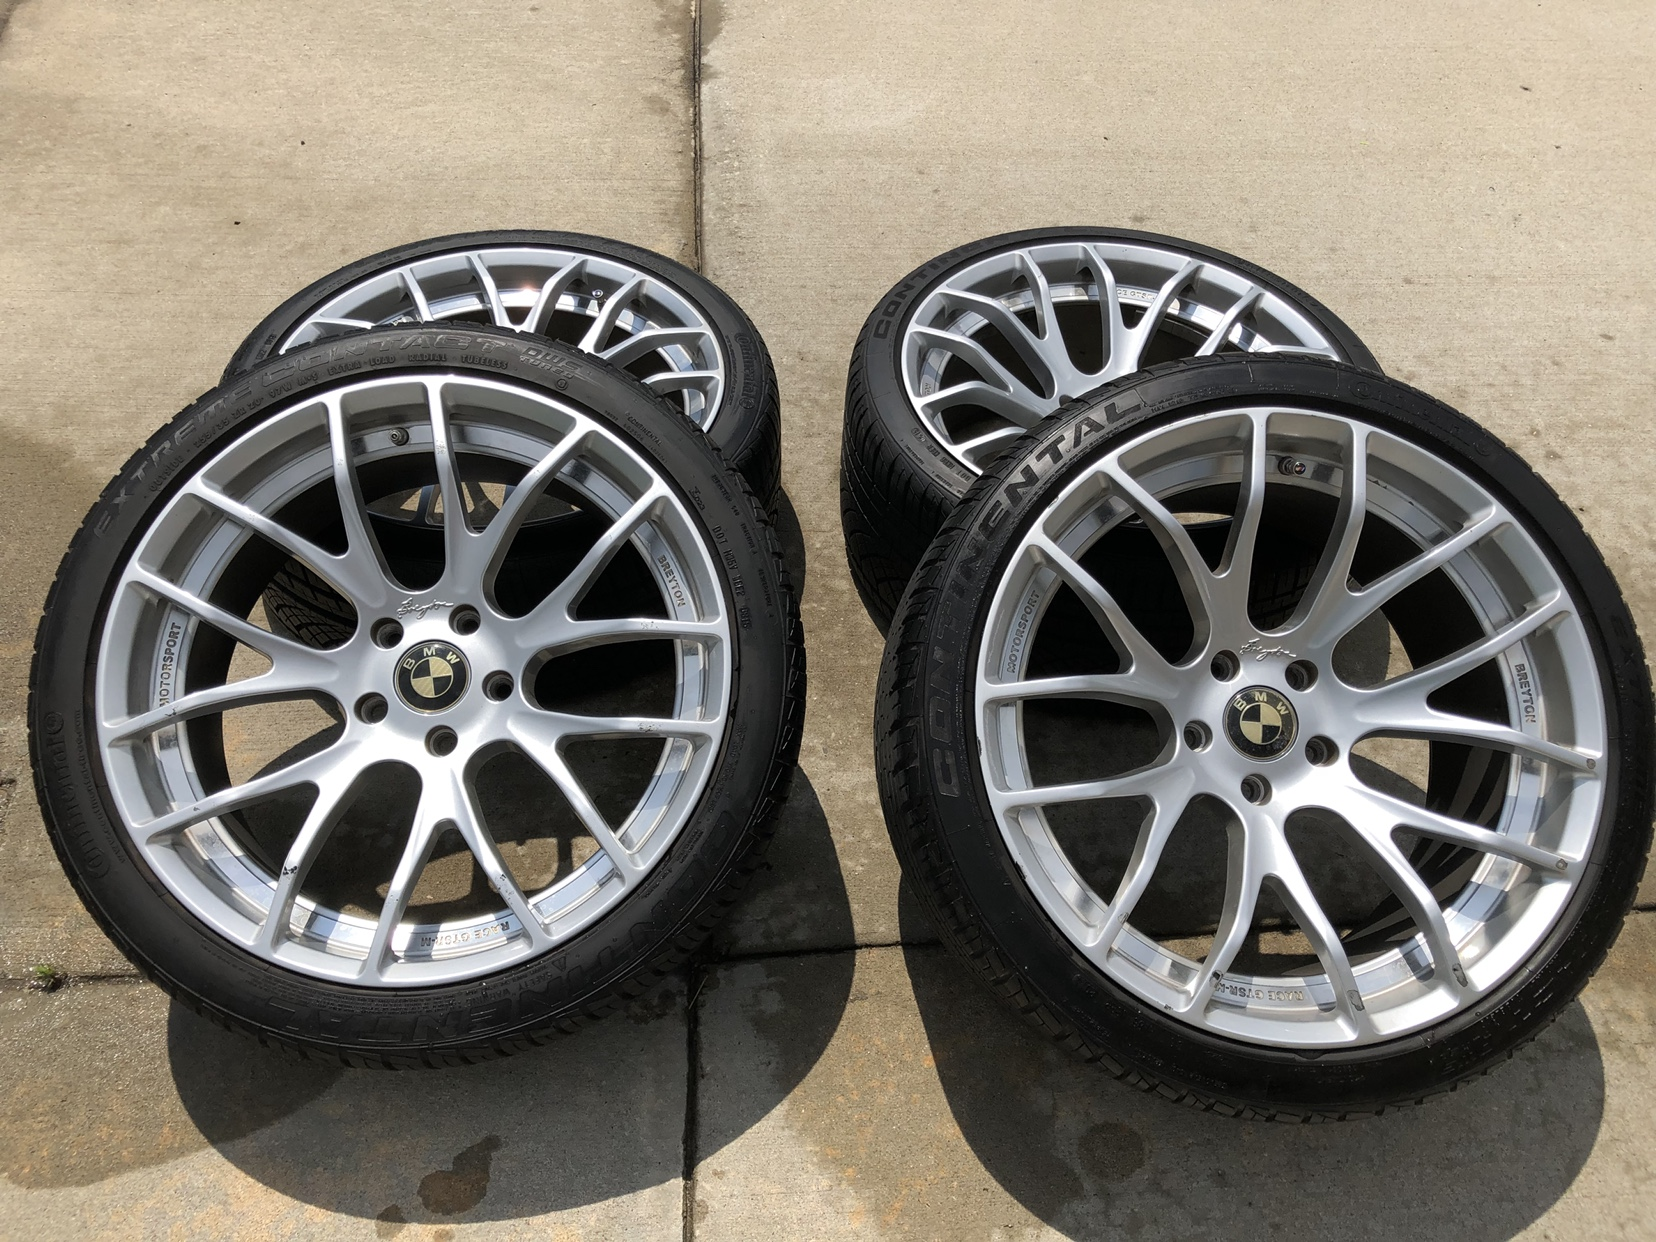 Breyton Wheels and DWS Tires for sale BMW M5 Forum and M6 Forums